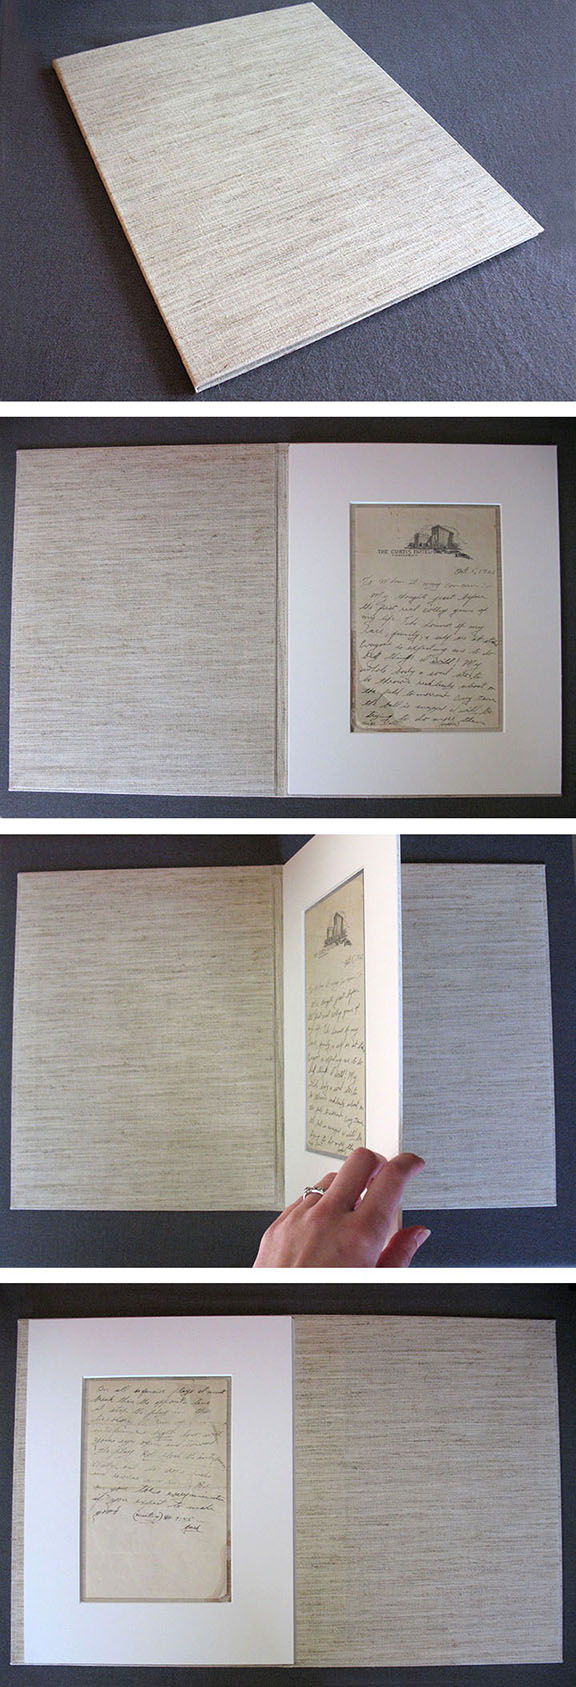 The last letter written by Jack Trice in 1923, on the eve of the college football game in which he was fatally injured.